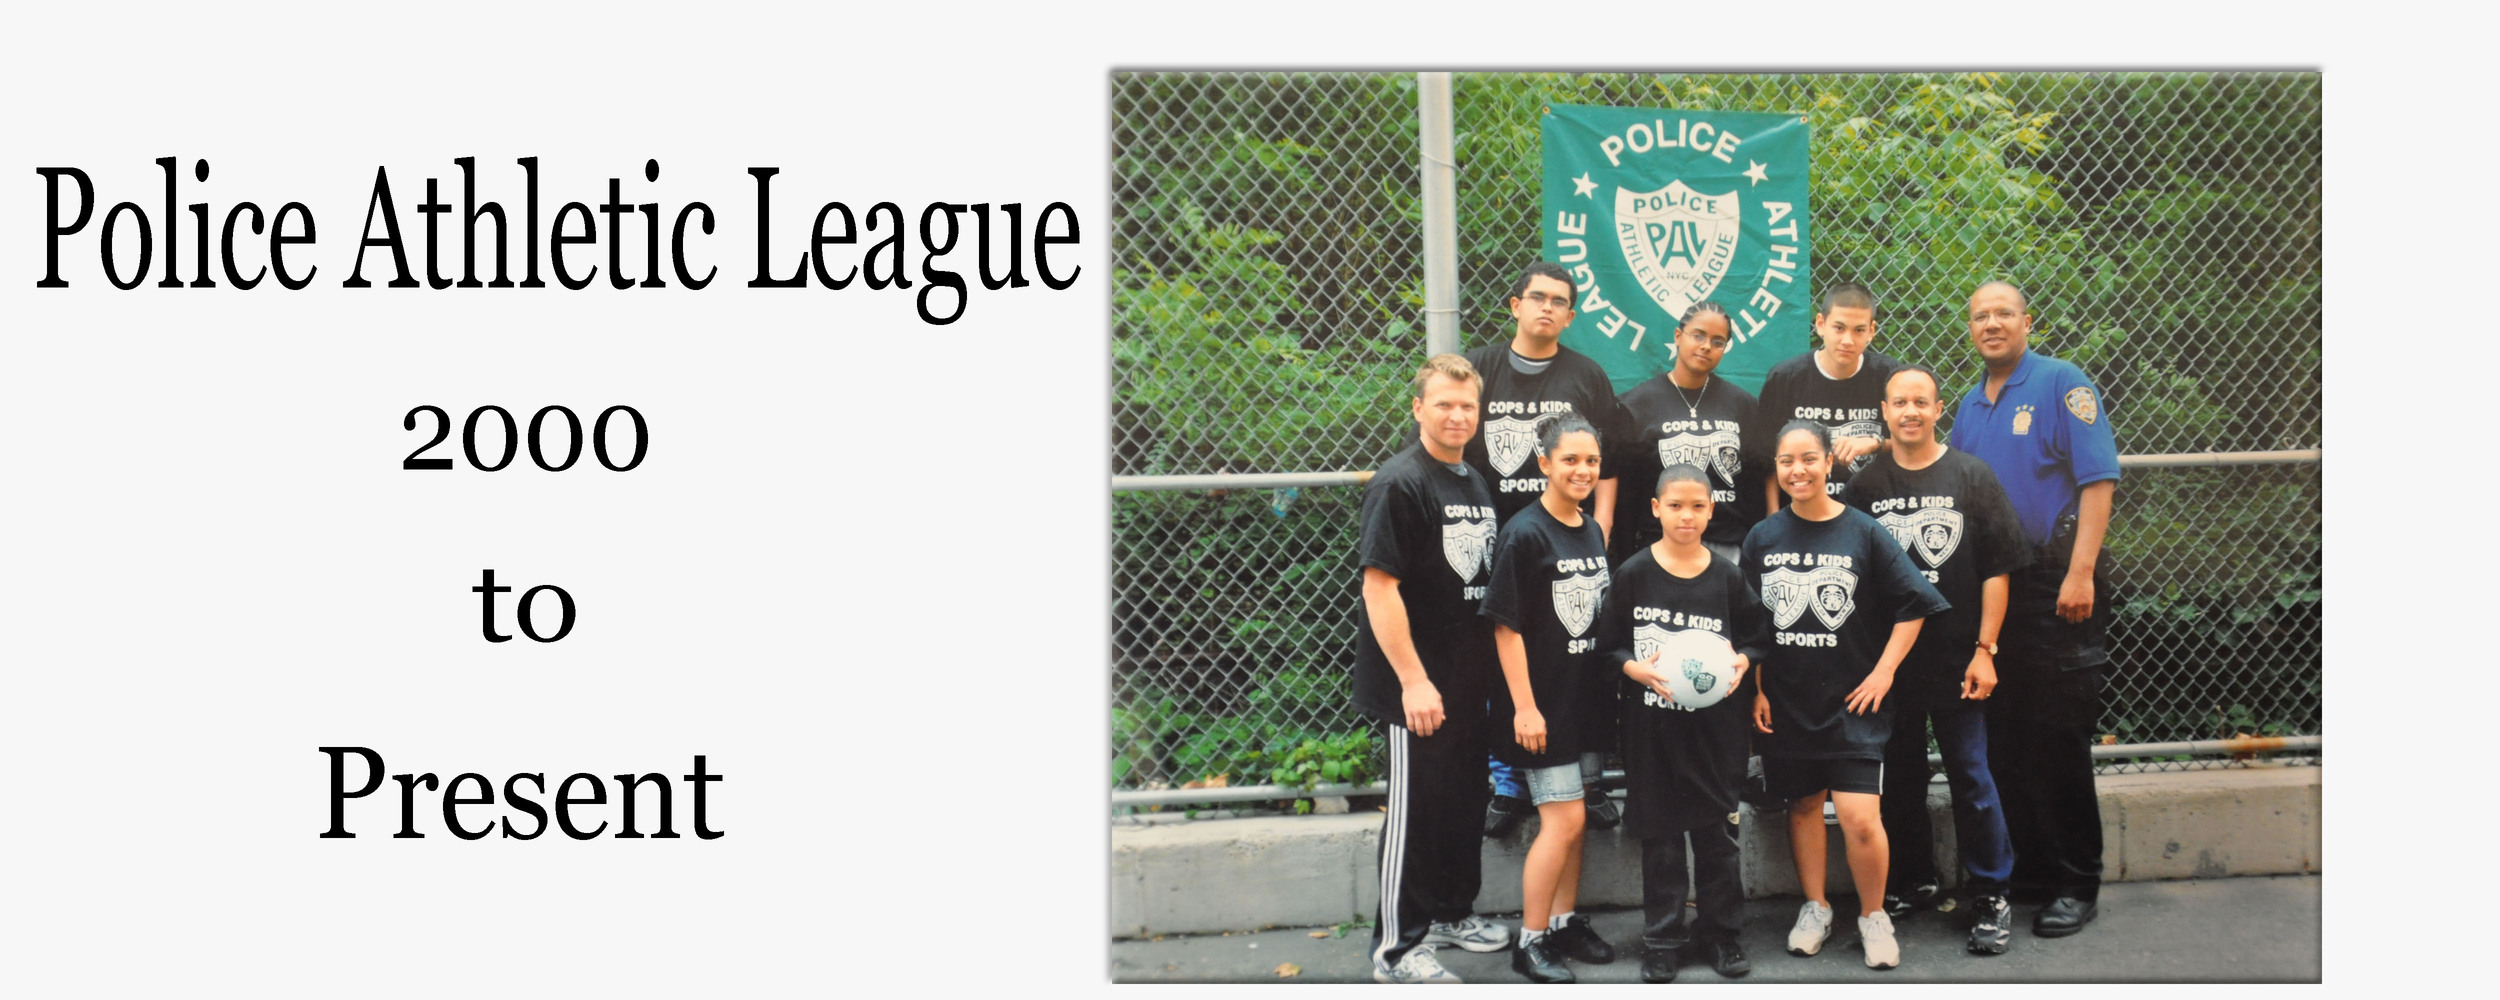 history police athletic league inc